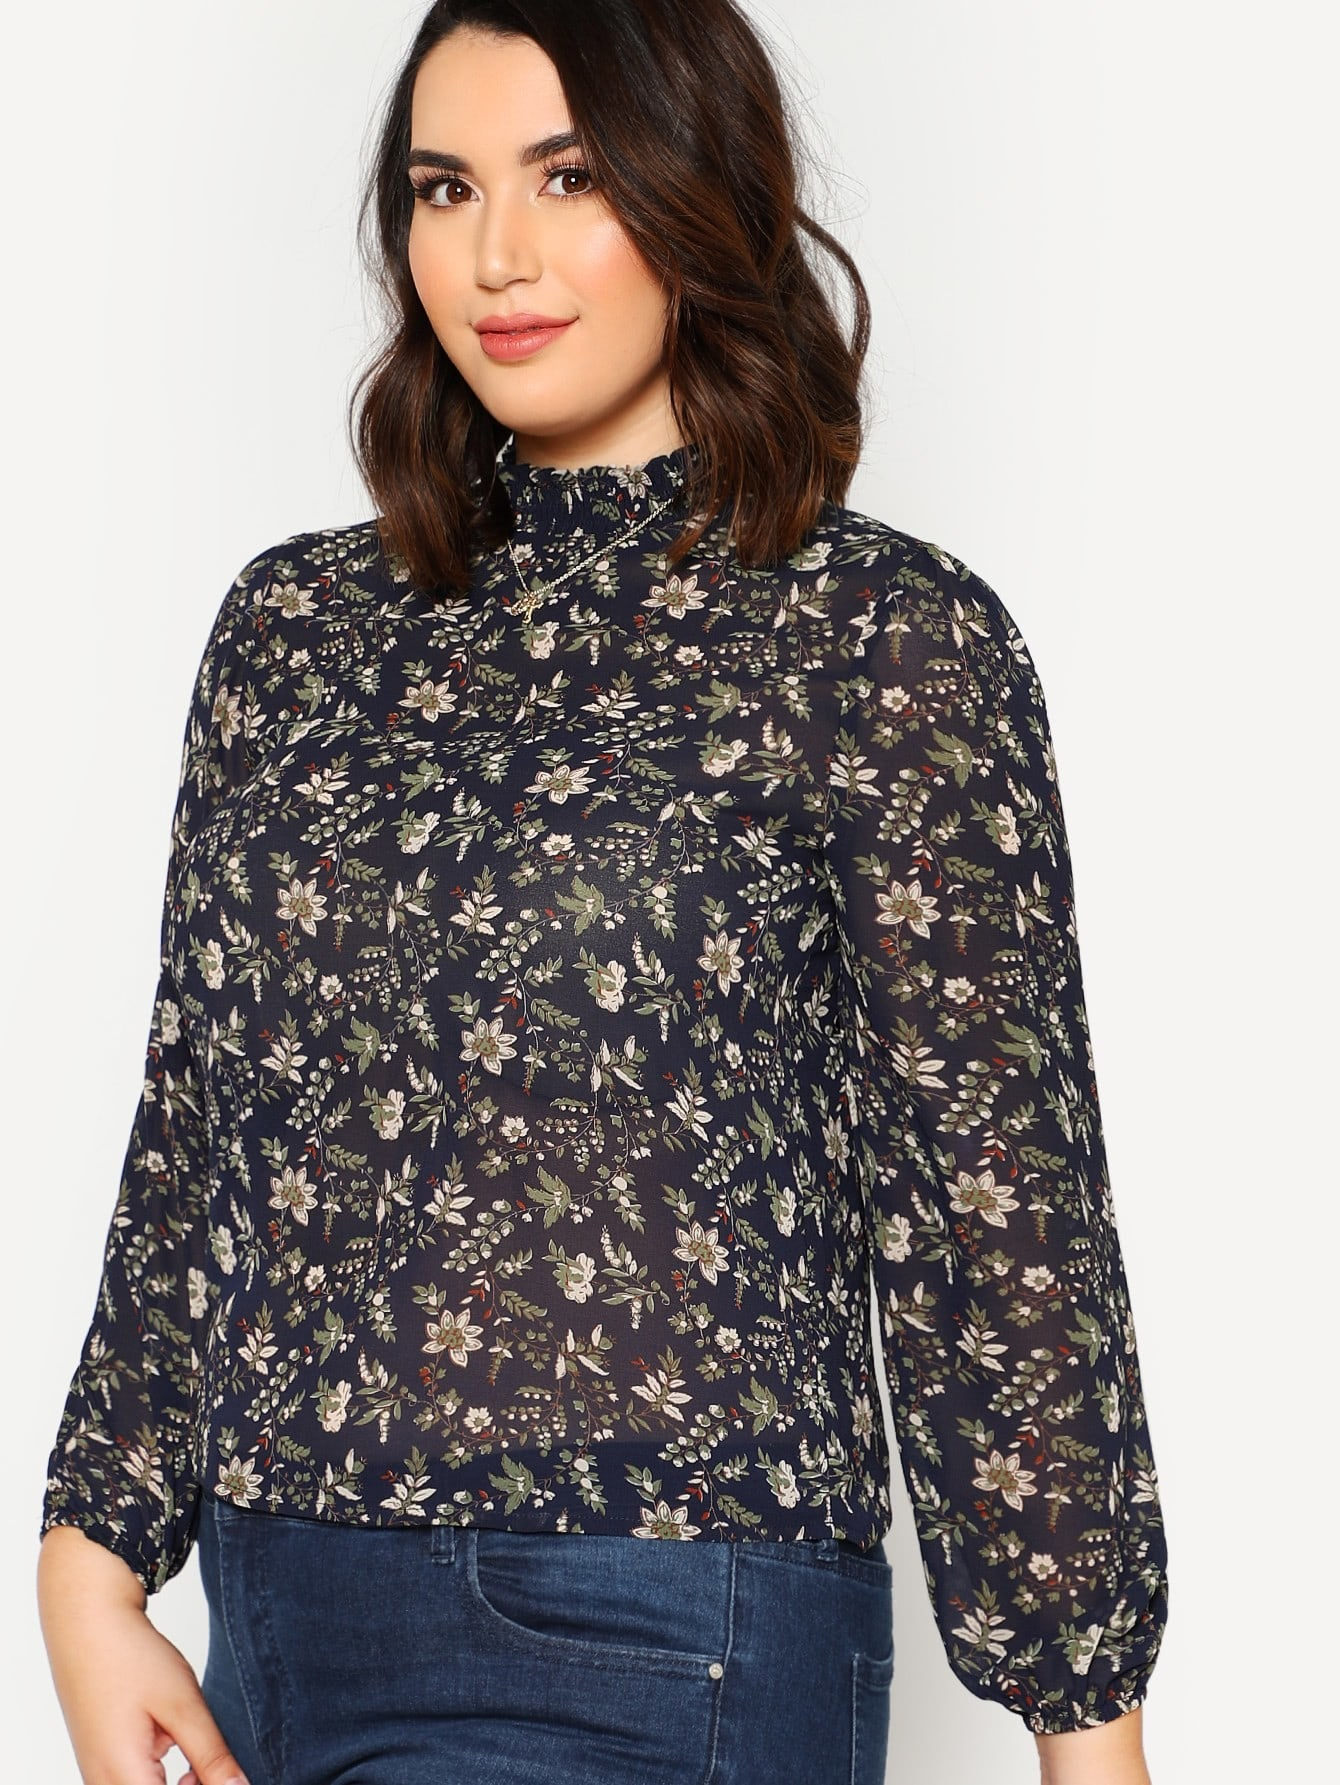 High Neck Floral Print Tunic Top